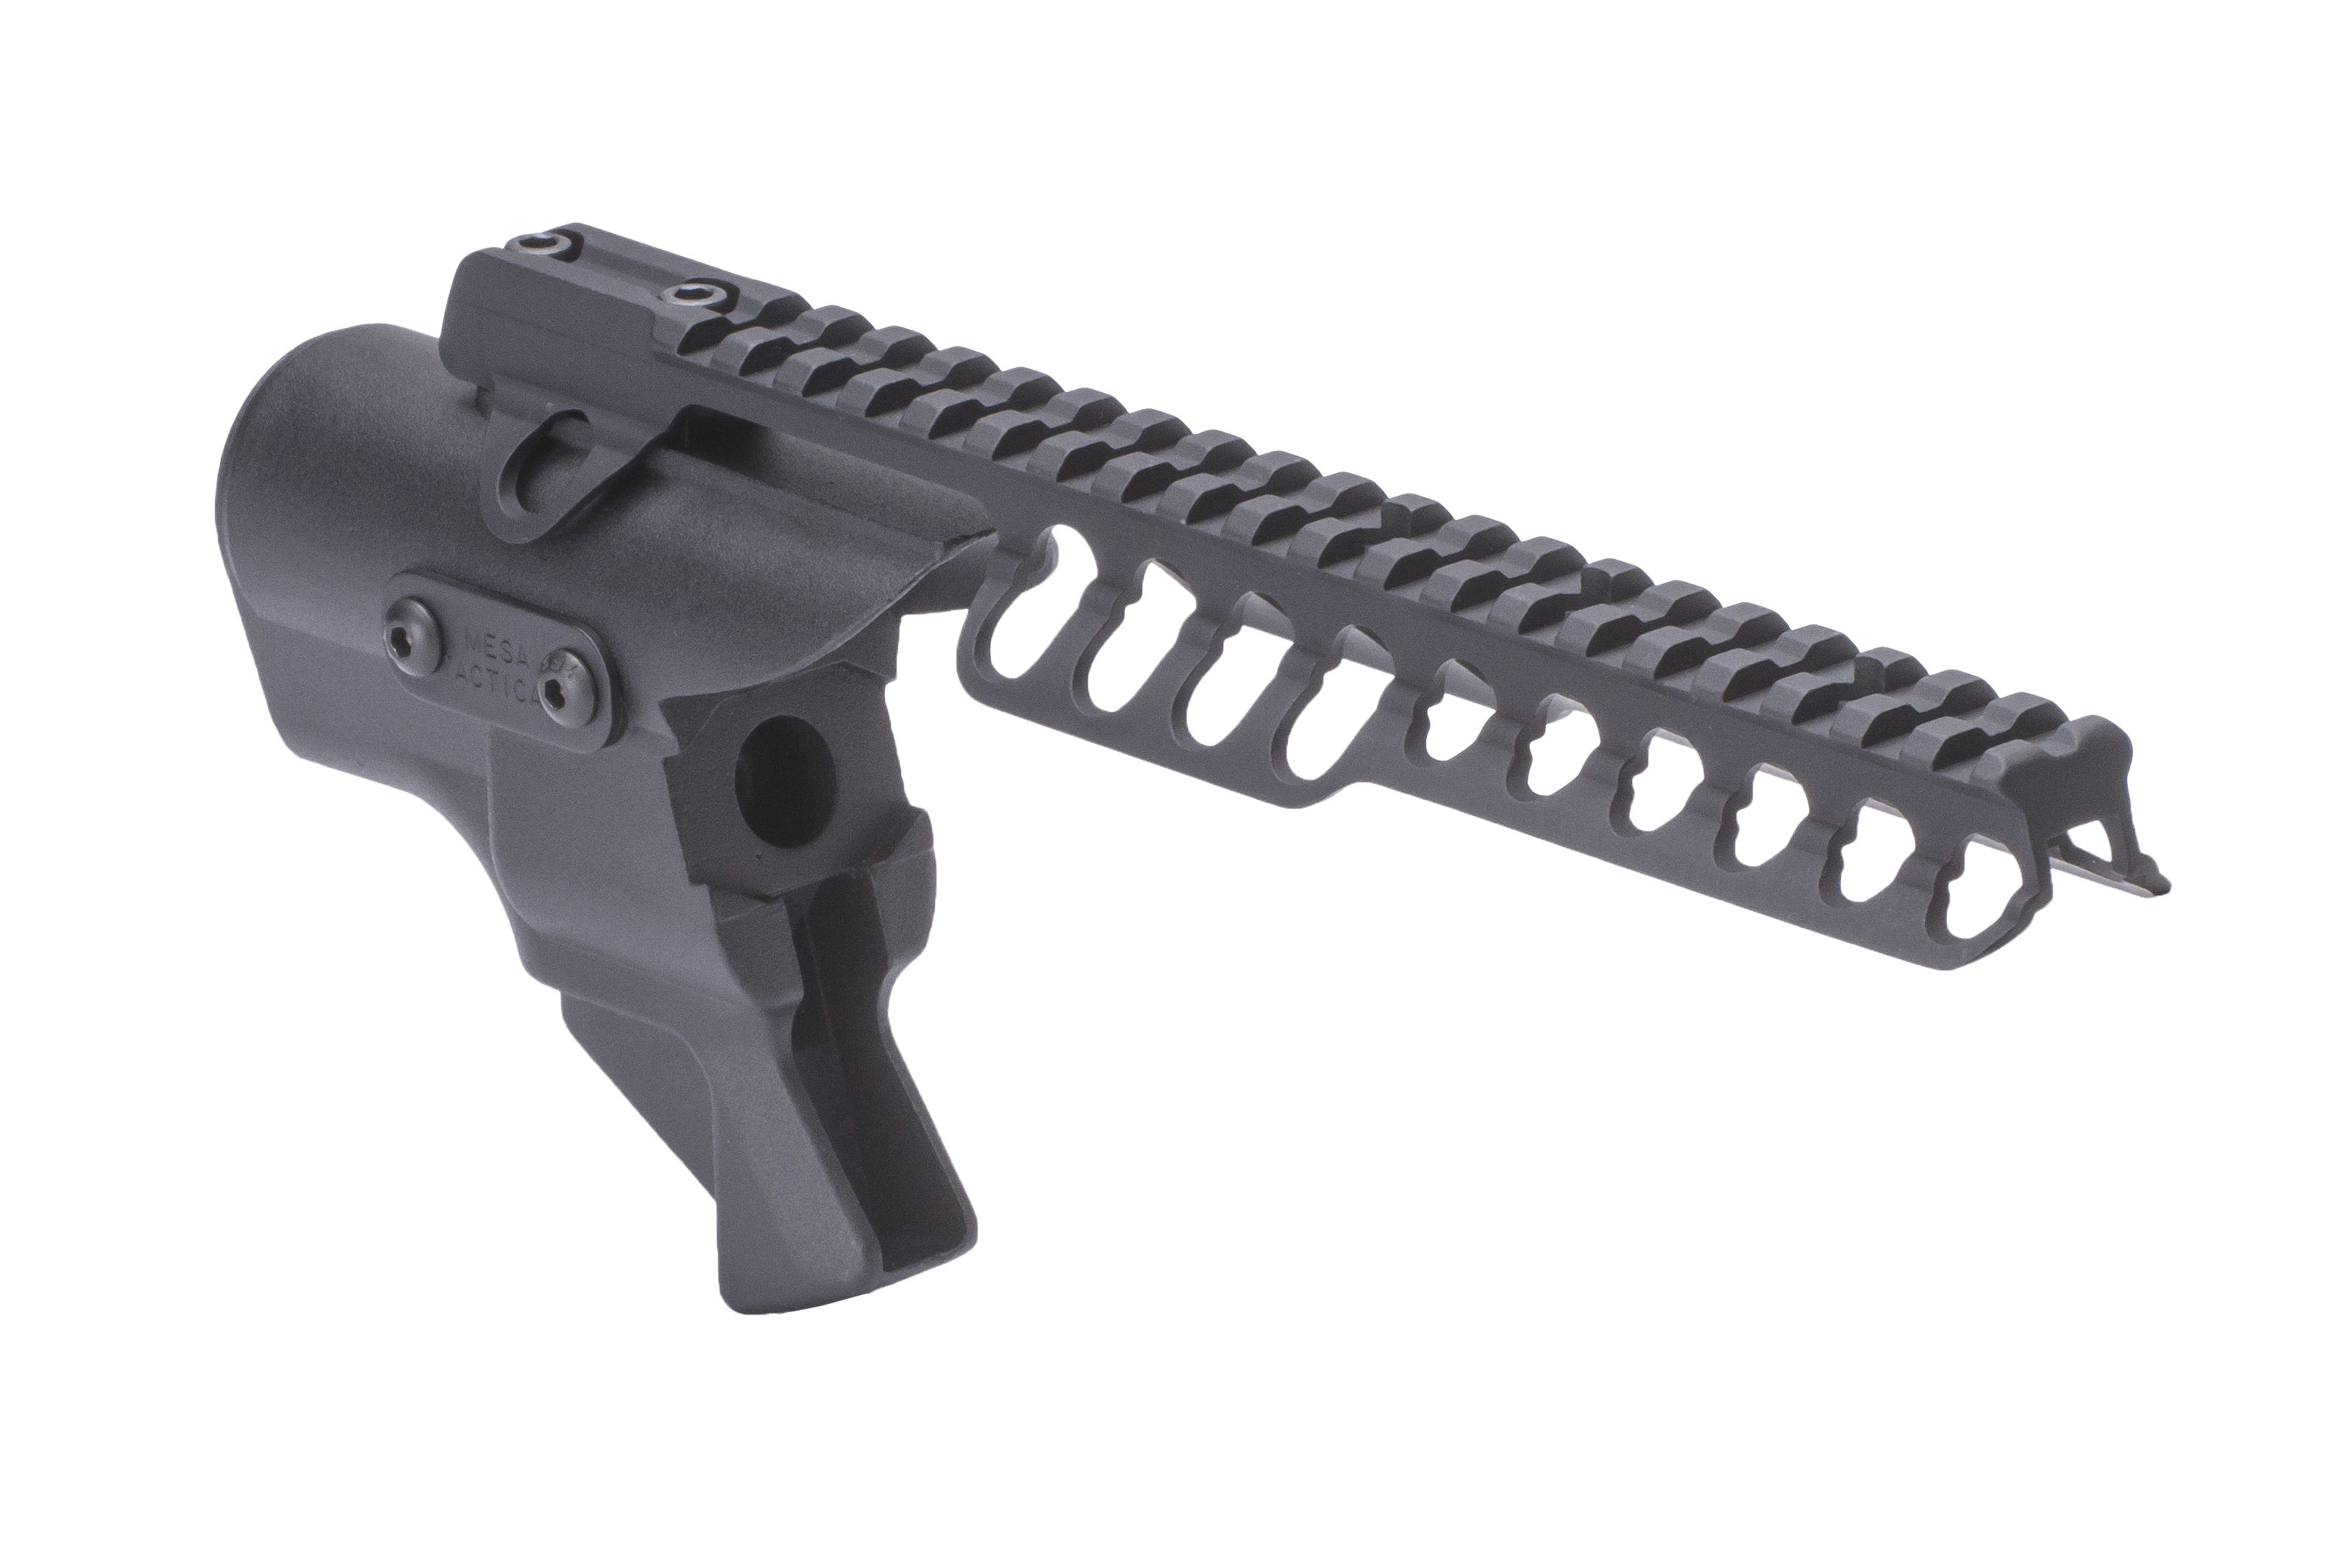 Mesa Tactical High Tube Stock Adapter w/ 9